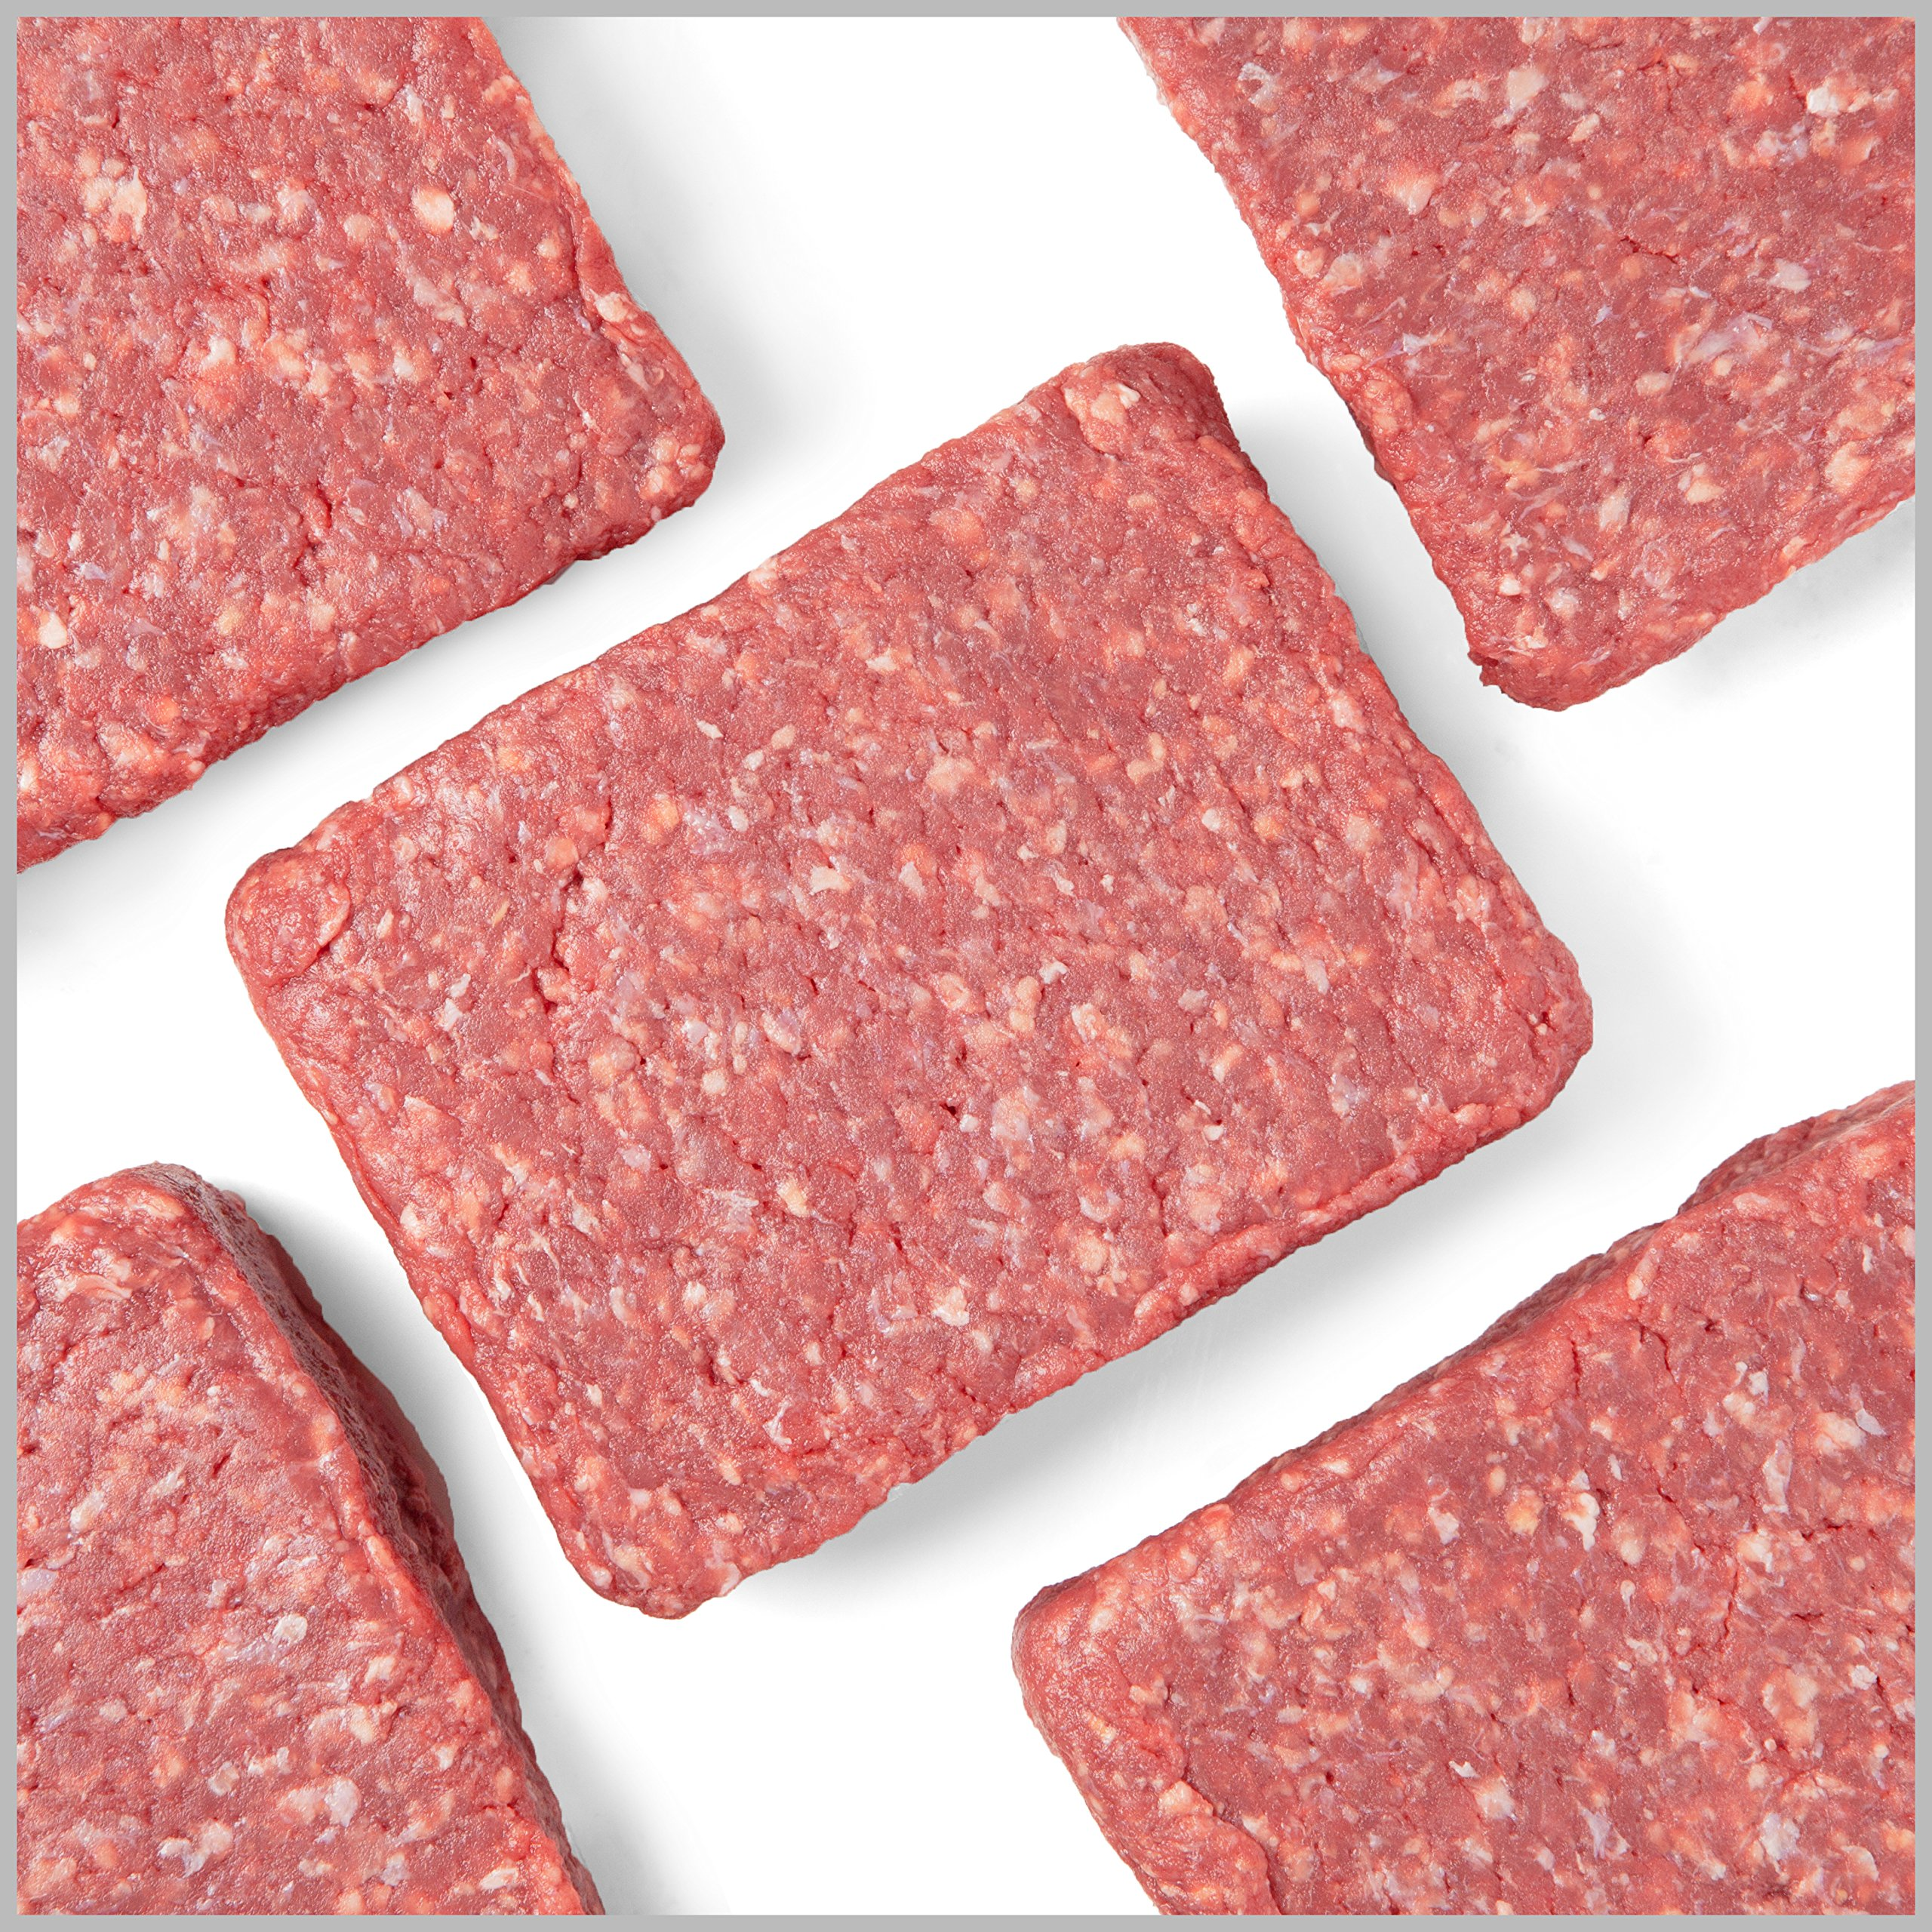 Pre, 16 (1LB) 85% Lean Ground Beef Bricks - 100% Grass-Fed, Grass-Finished and Pasture-Raised Beef